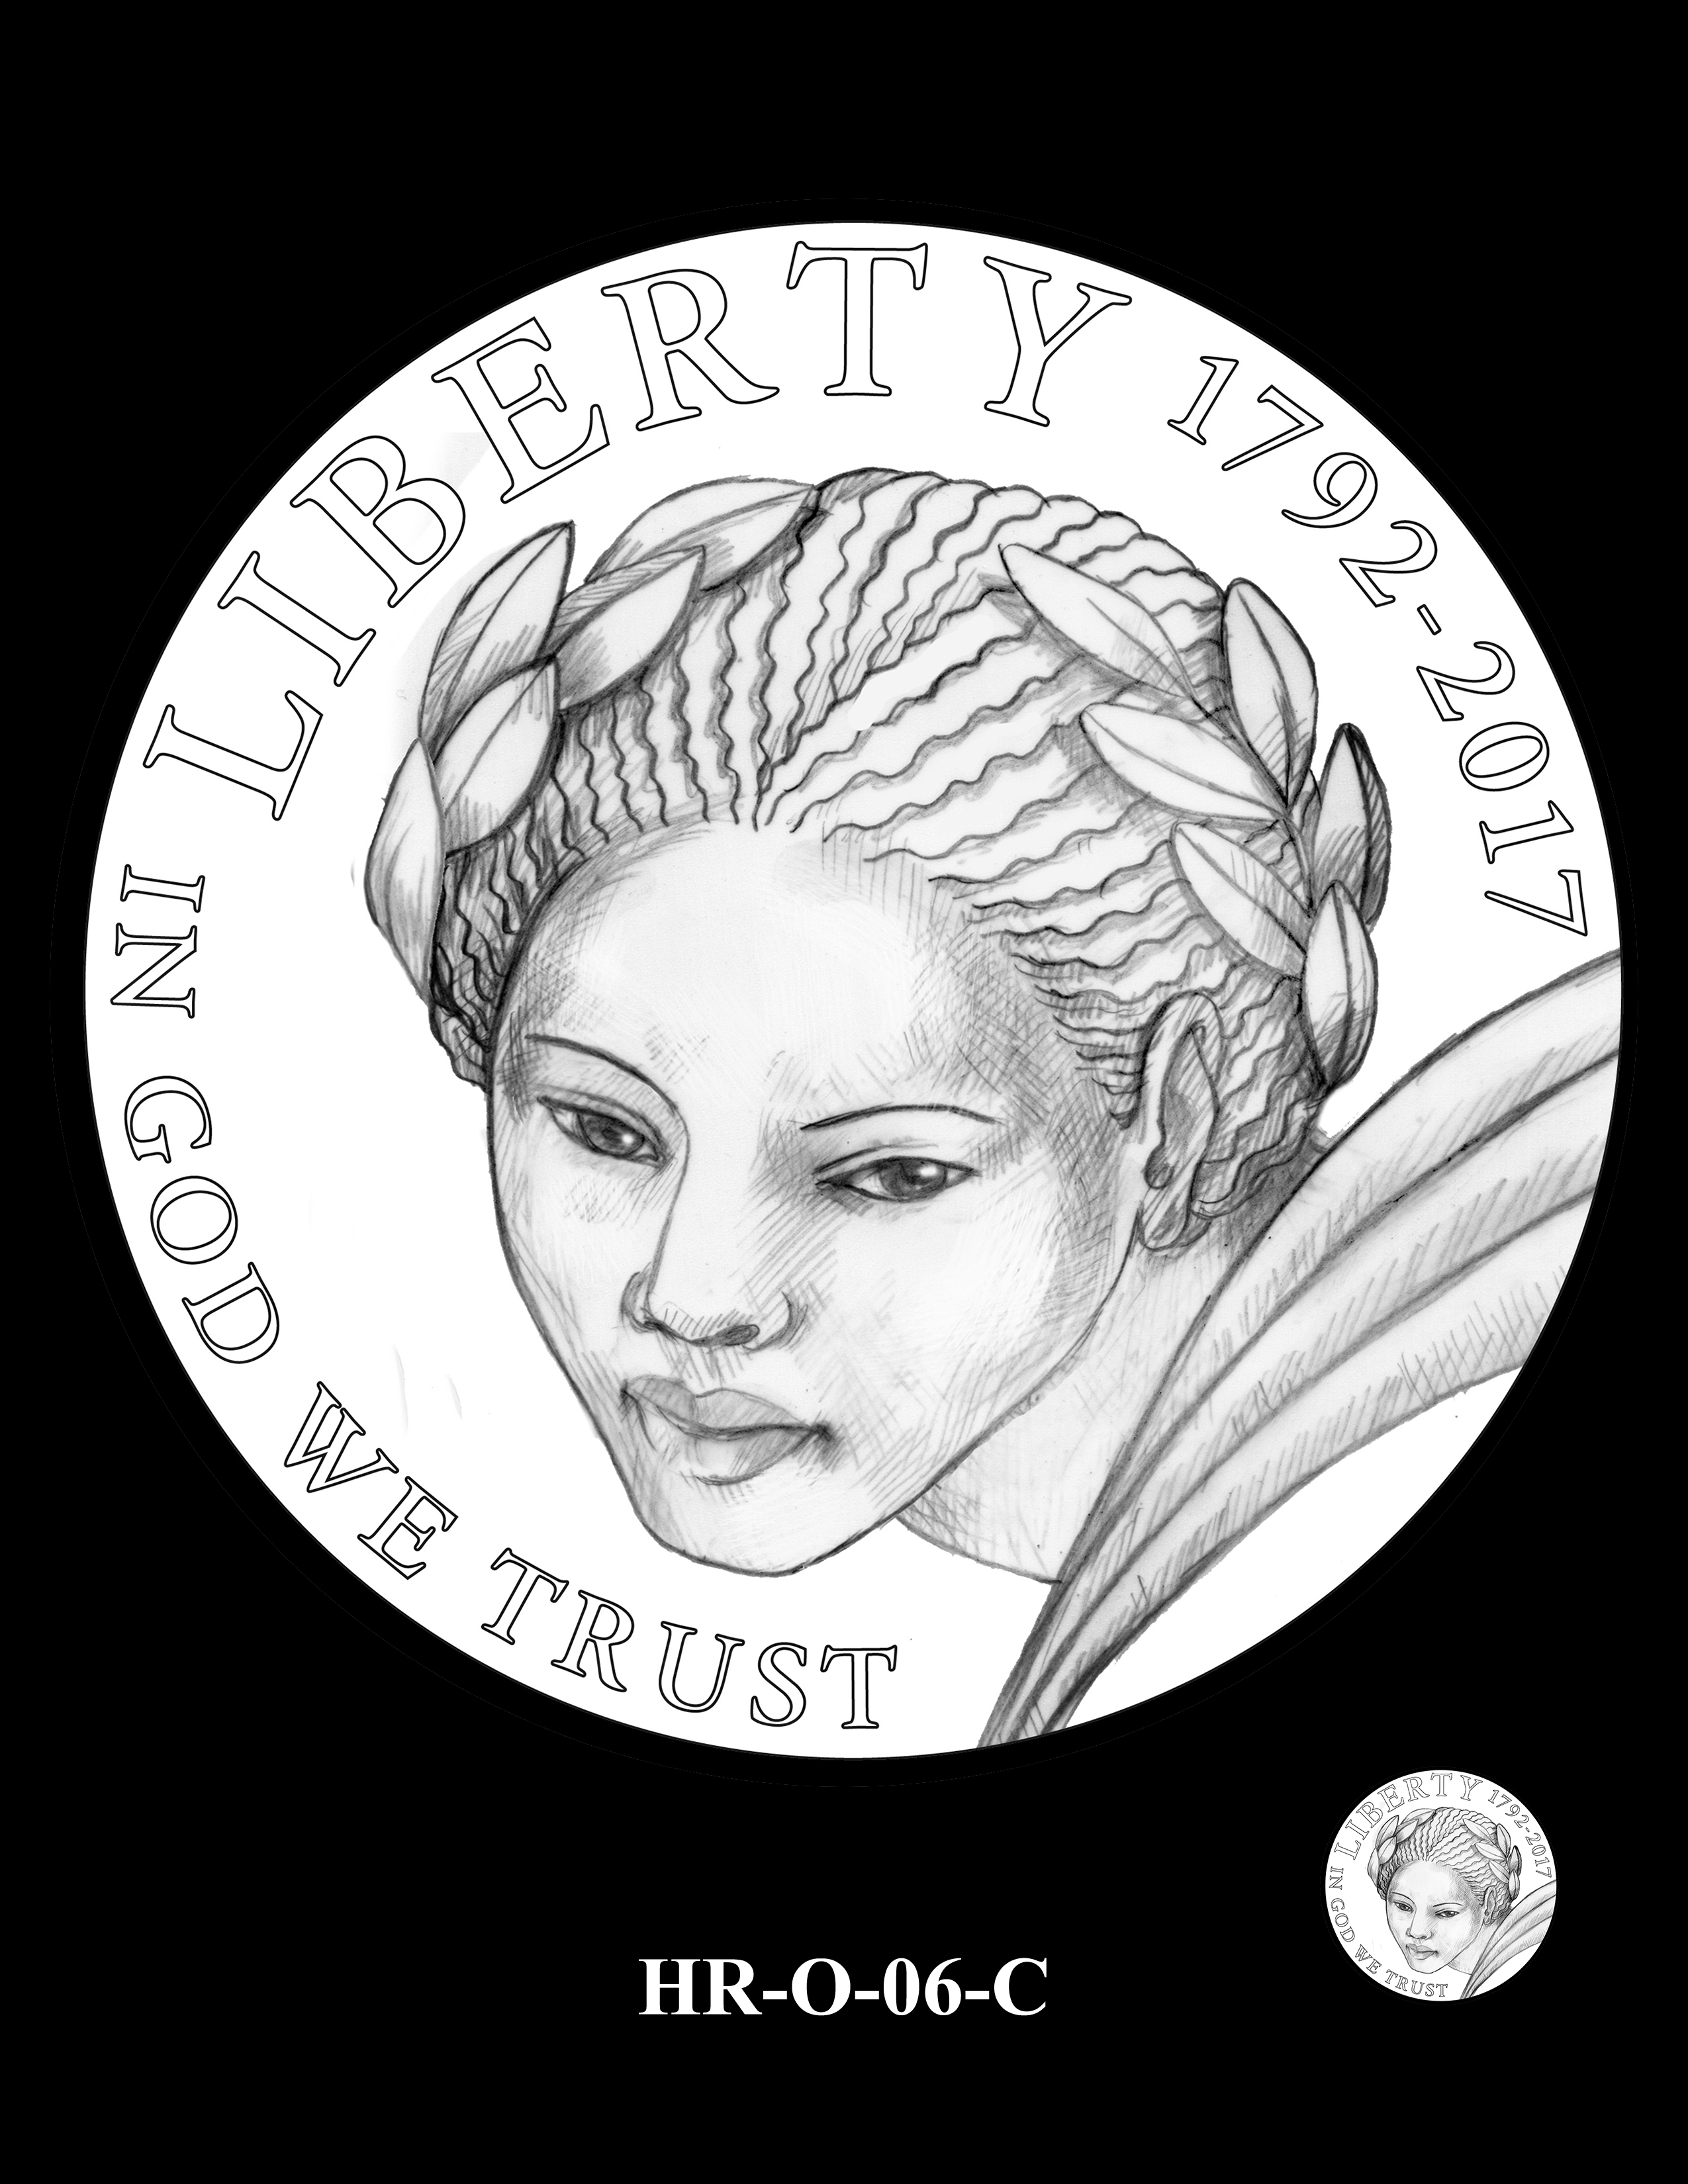 HR-O-06-C -- 2019 American Liberty High Relief 24k Gold Coin/Silver Medal